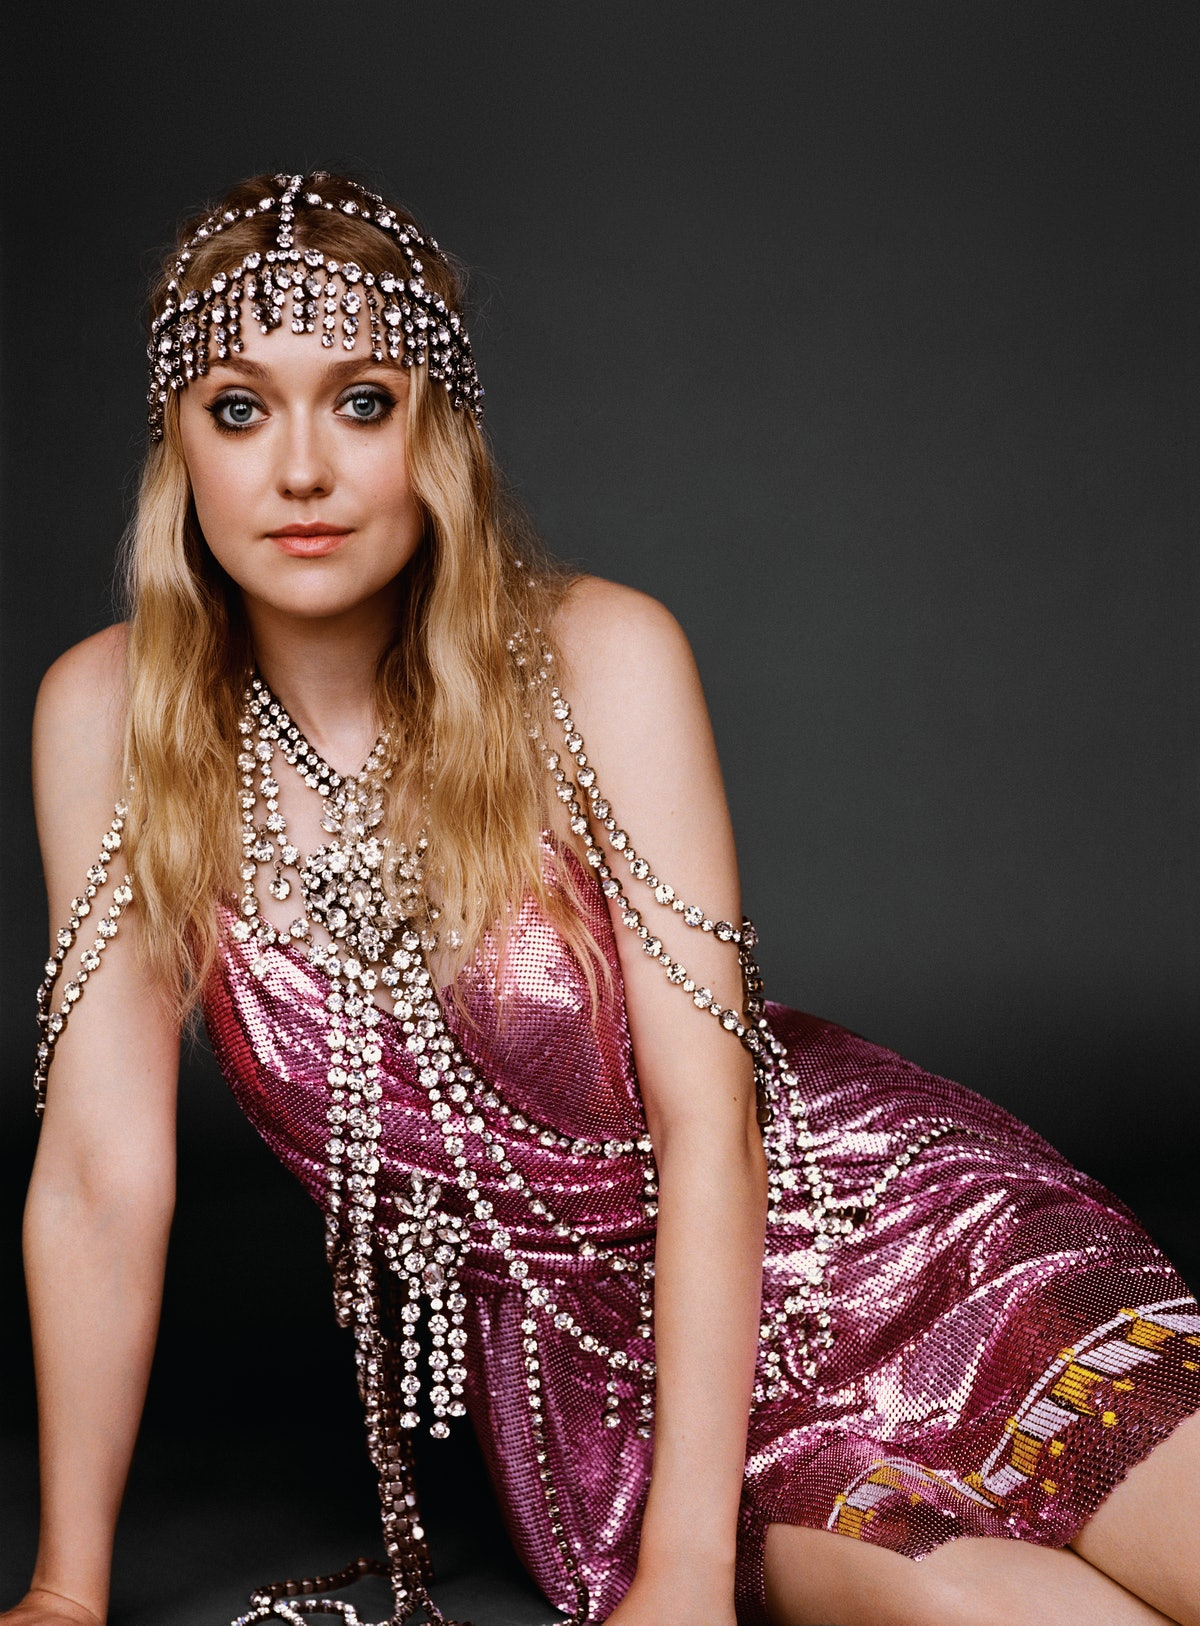 Fanning wears a Gucci dress, headpiece, and body chain.